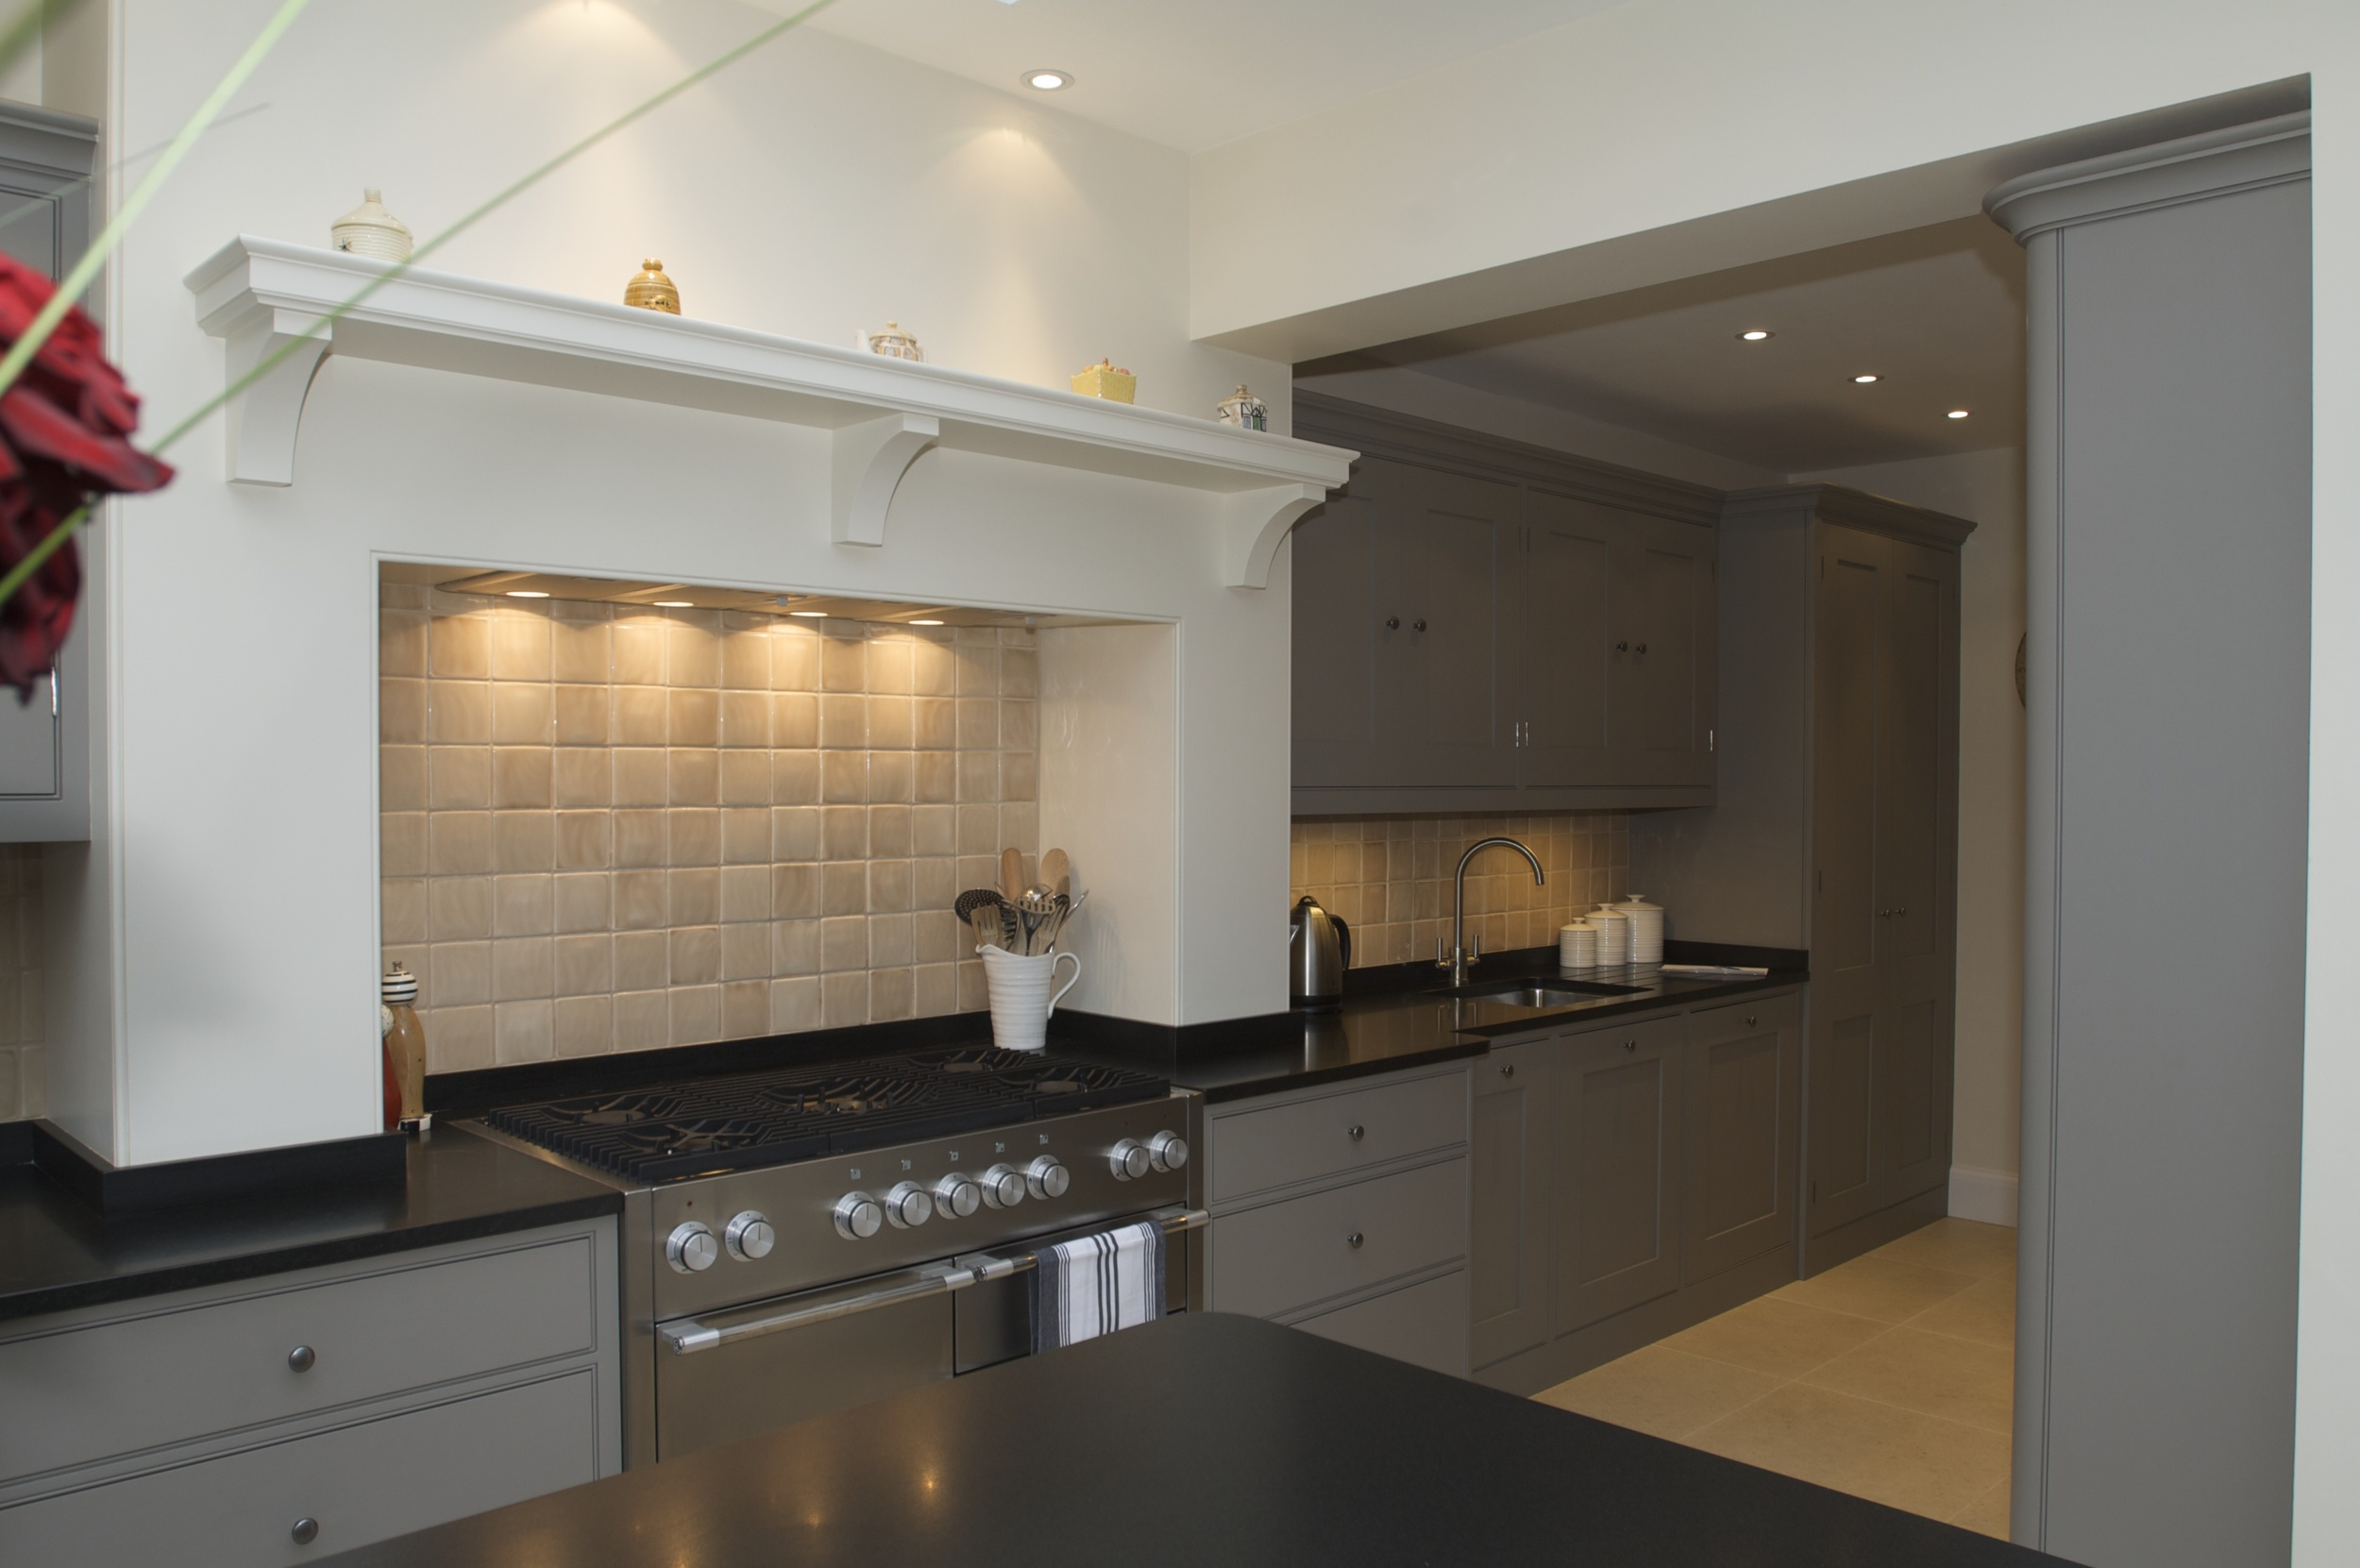 The chimney breast works as the perfect housing for the cooker